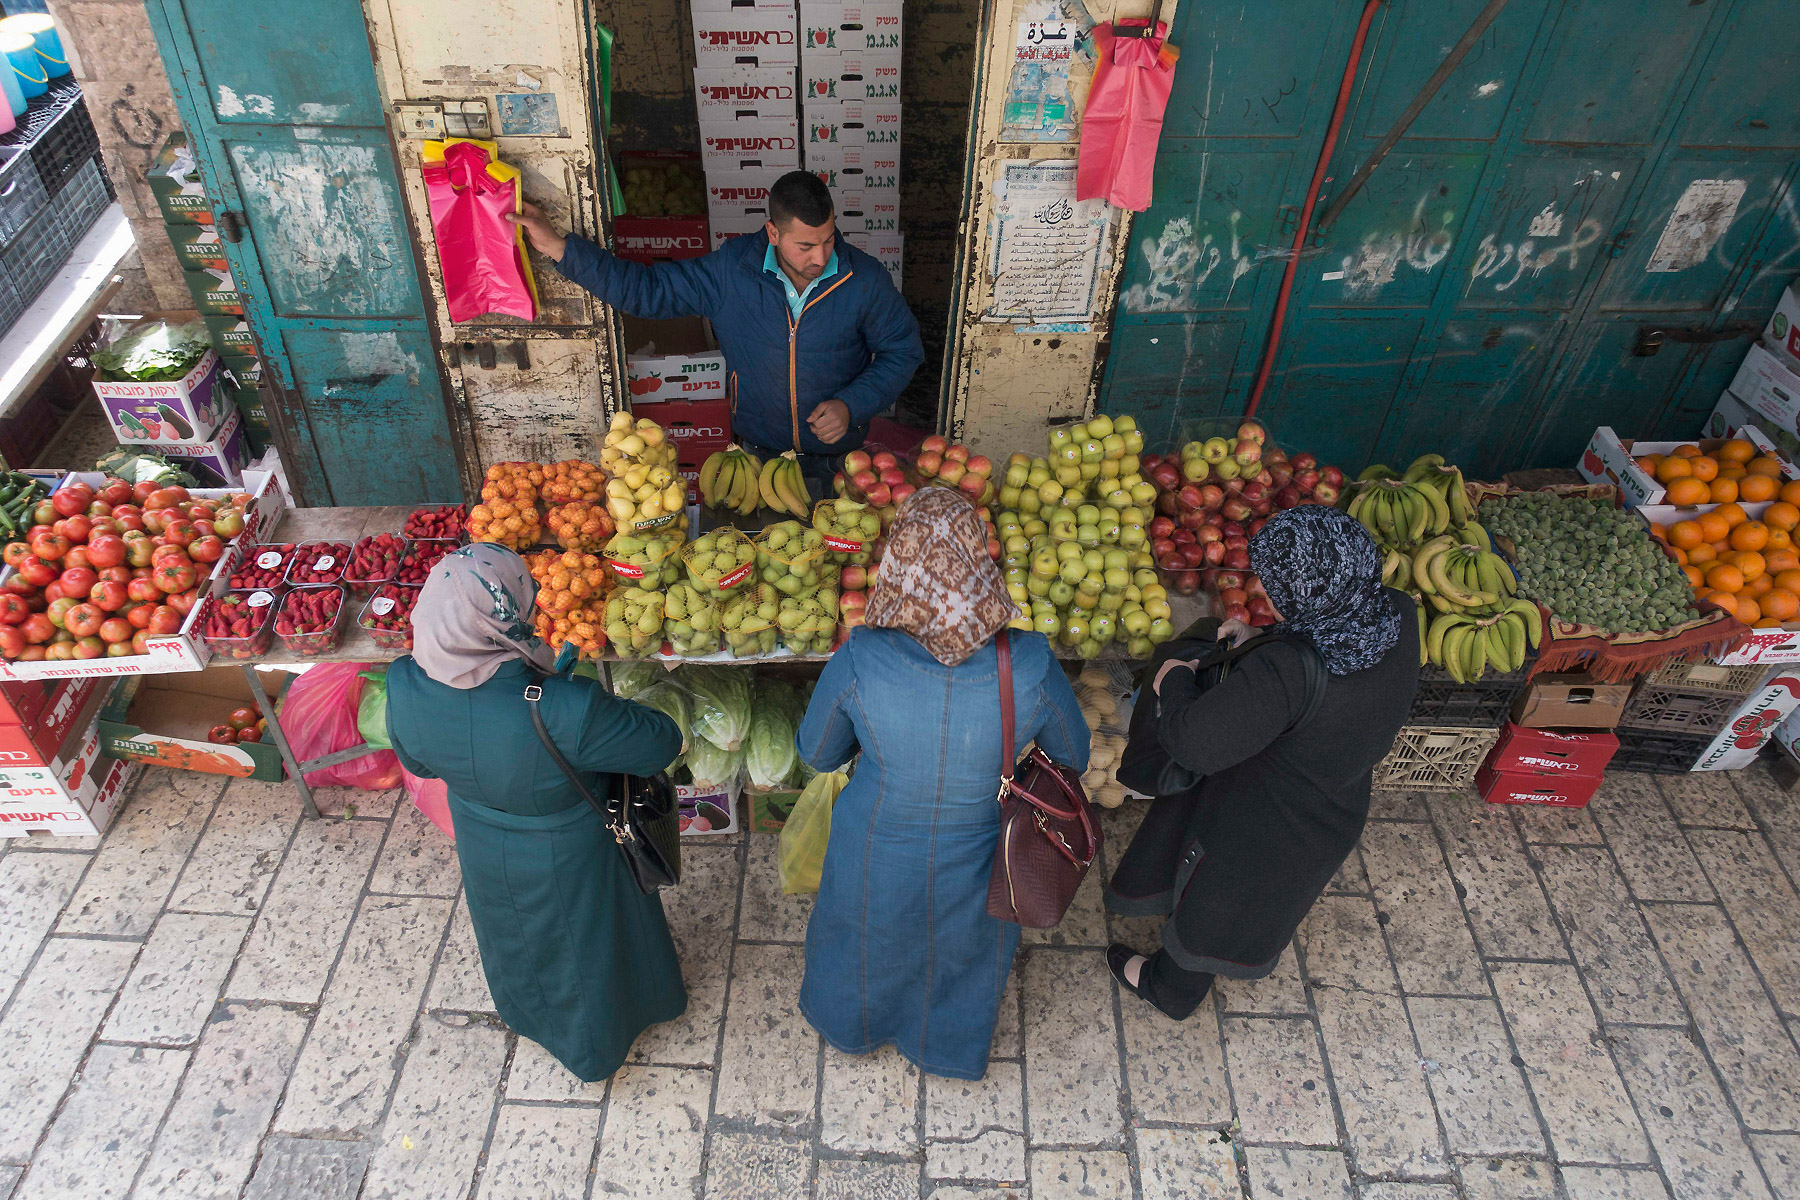 Women shop for fruit next to Jaffa Gate in the Old City Jerusalem